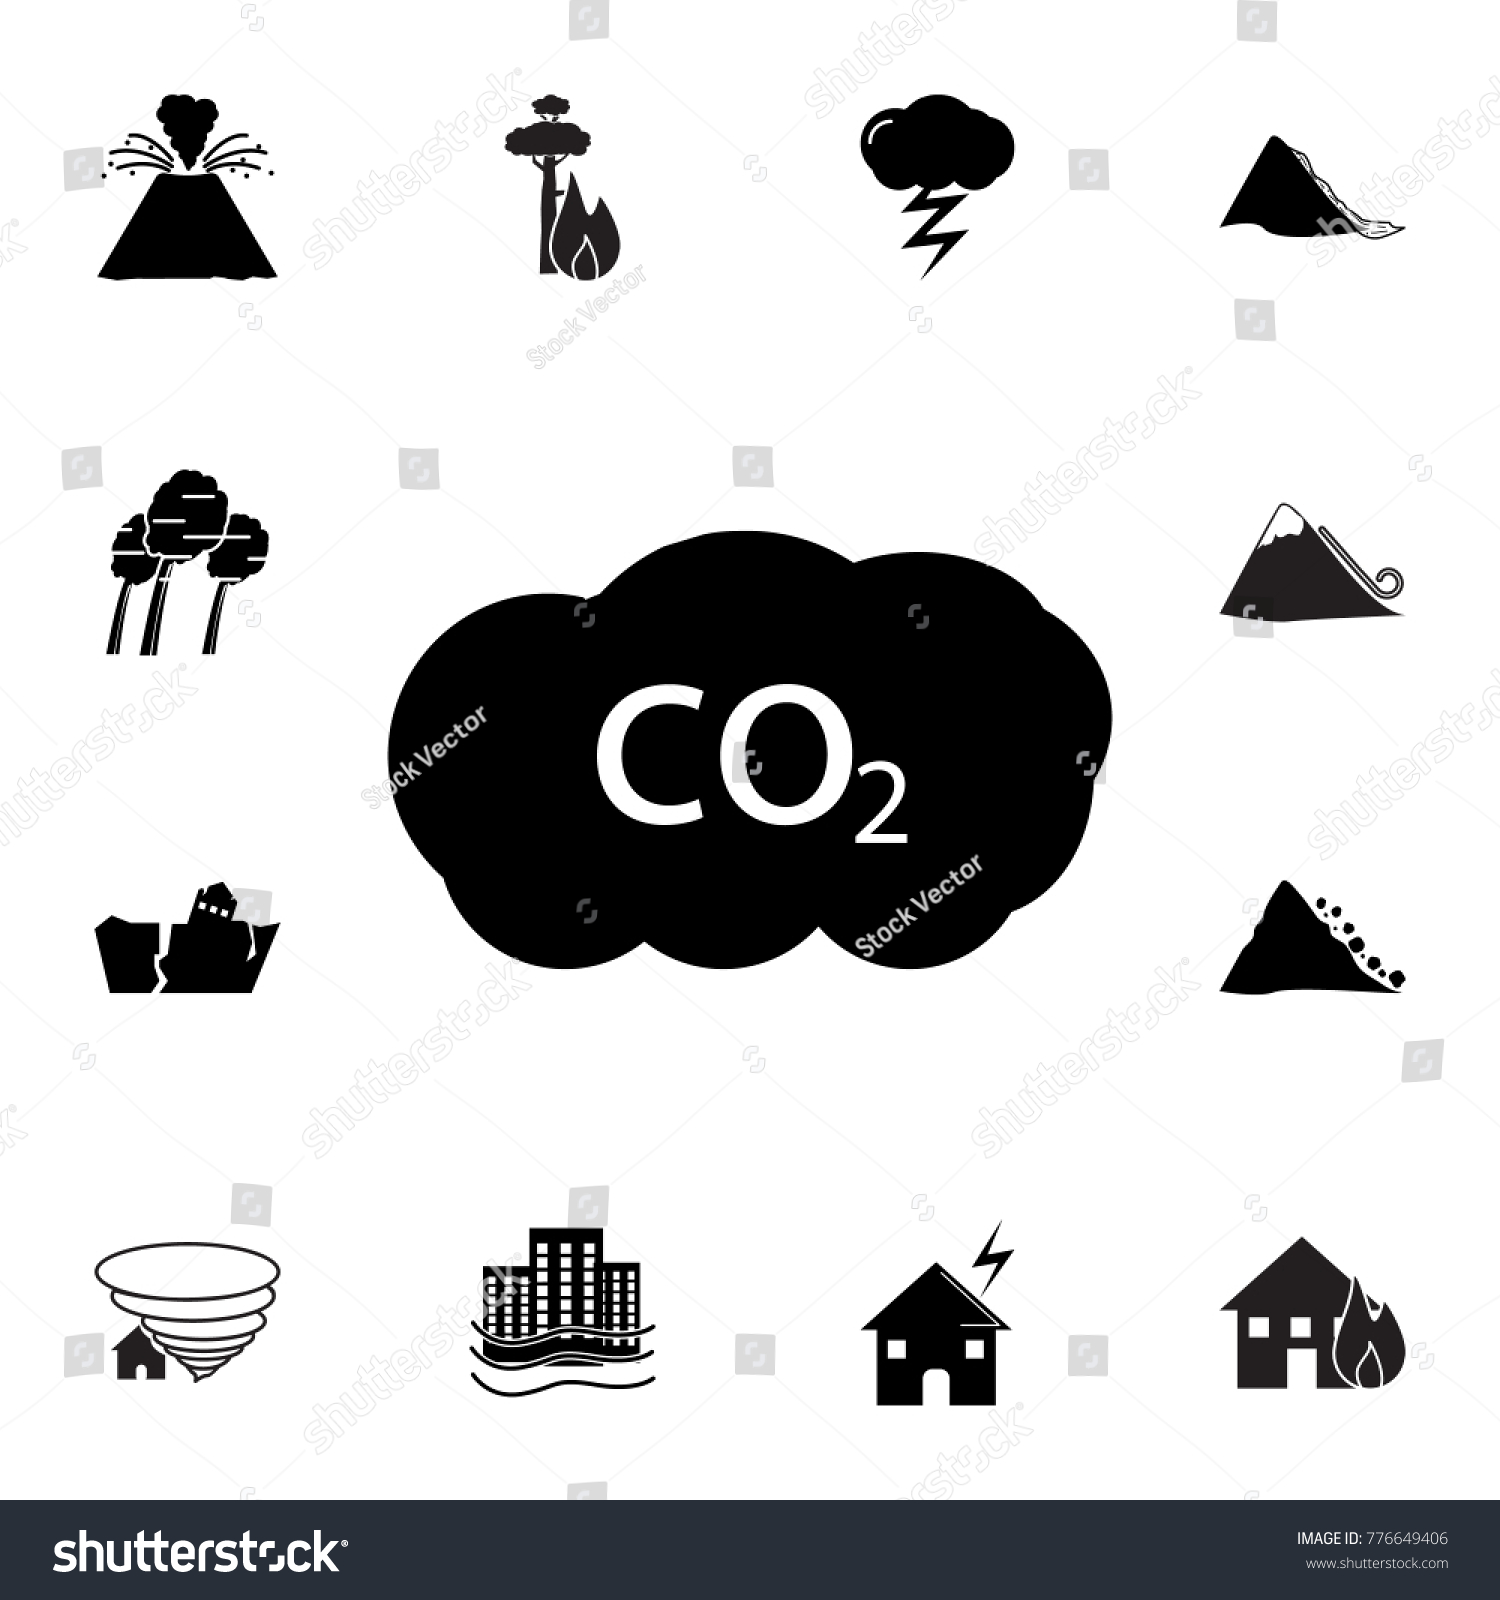 Co2 icon set natural disasters icons stock vector 776649406 set of natural disasters icons signs and symbols collection simple icons buycottarizona Choice Image